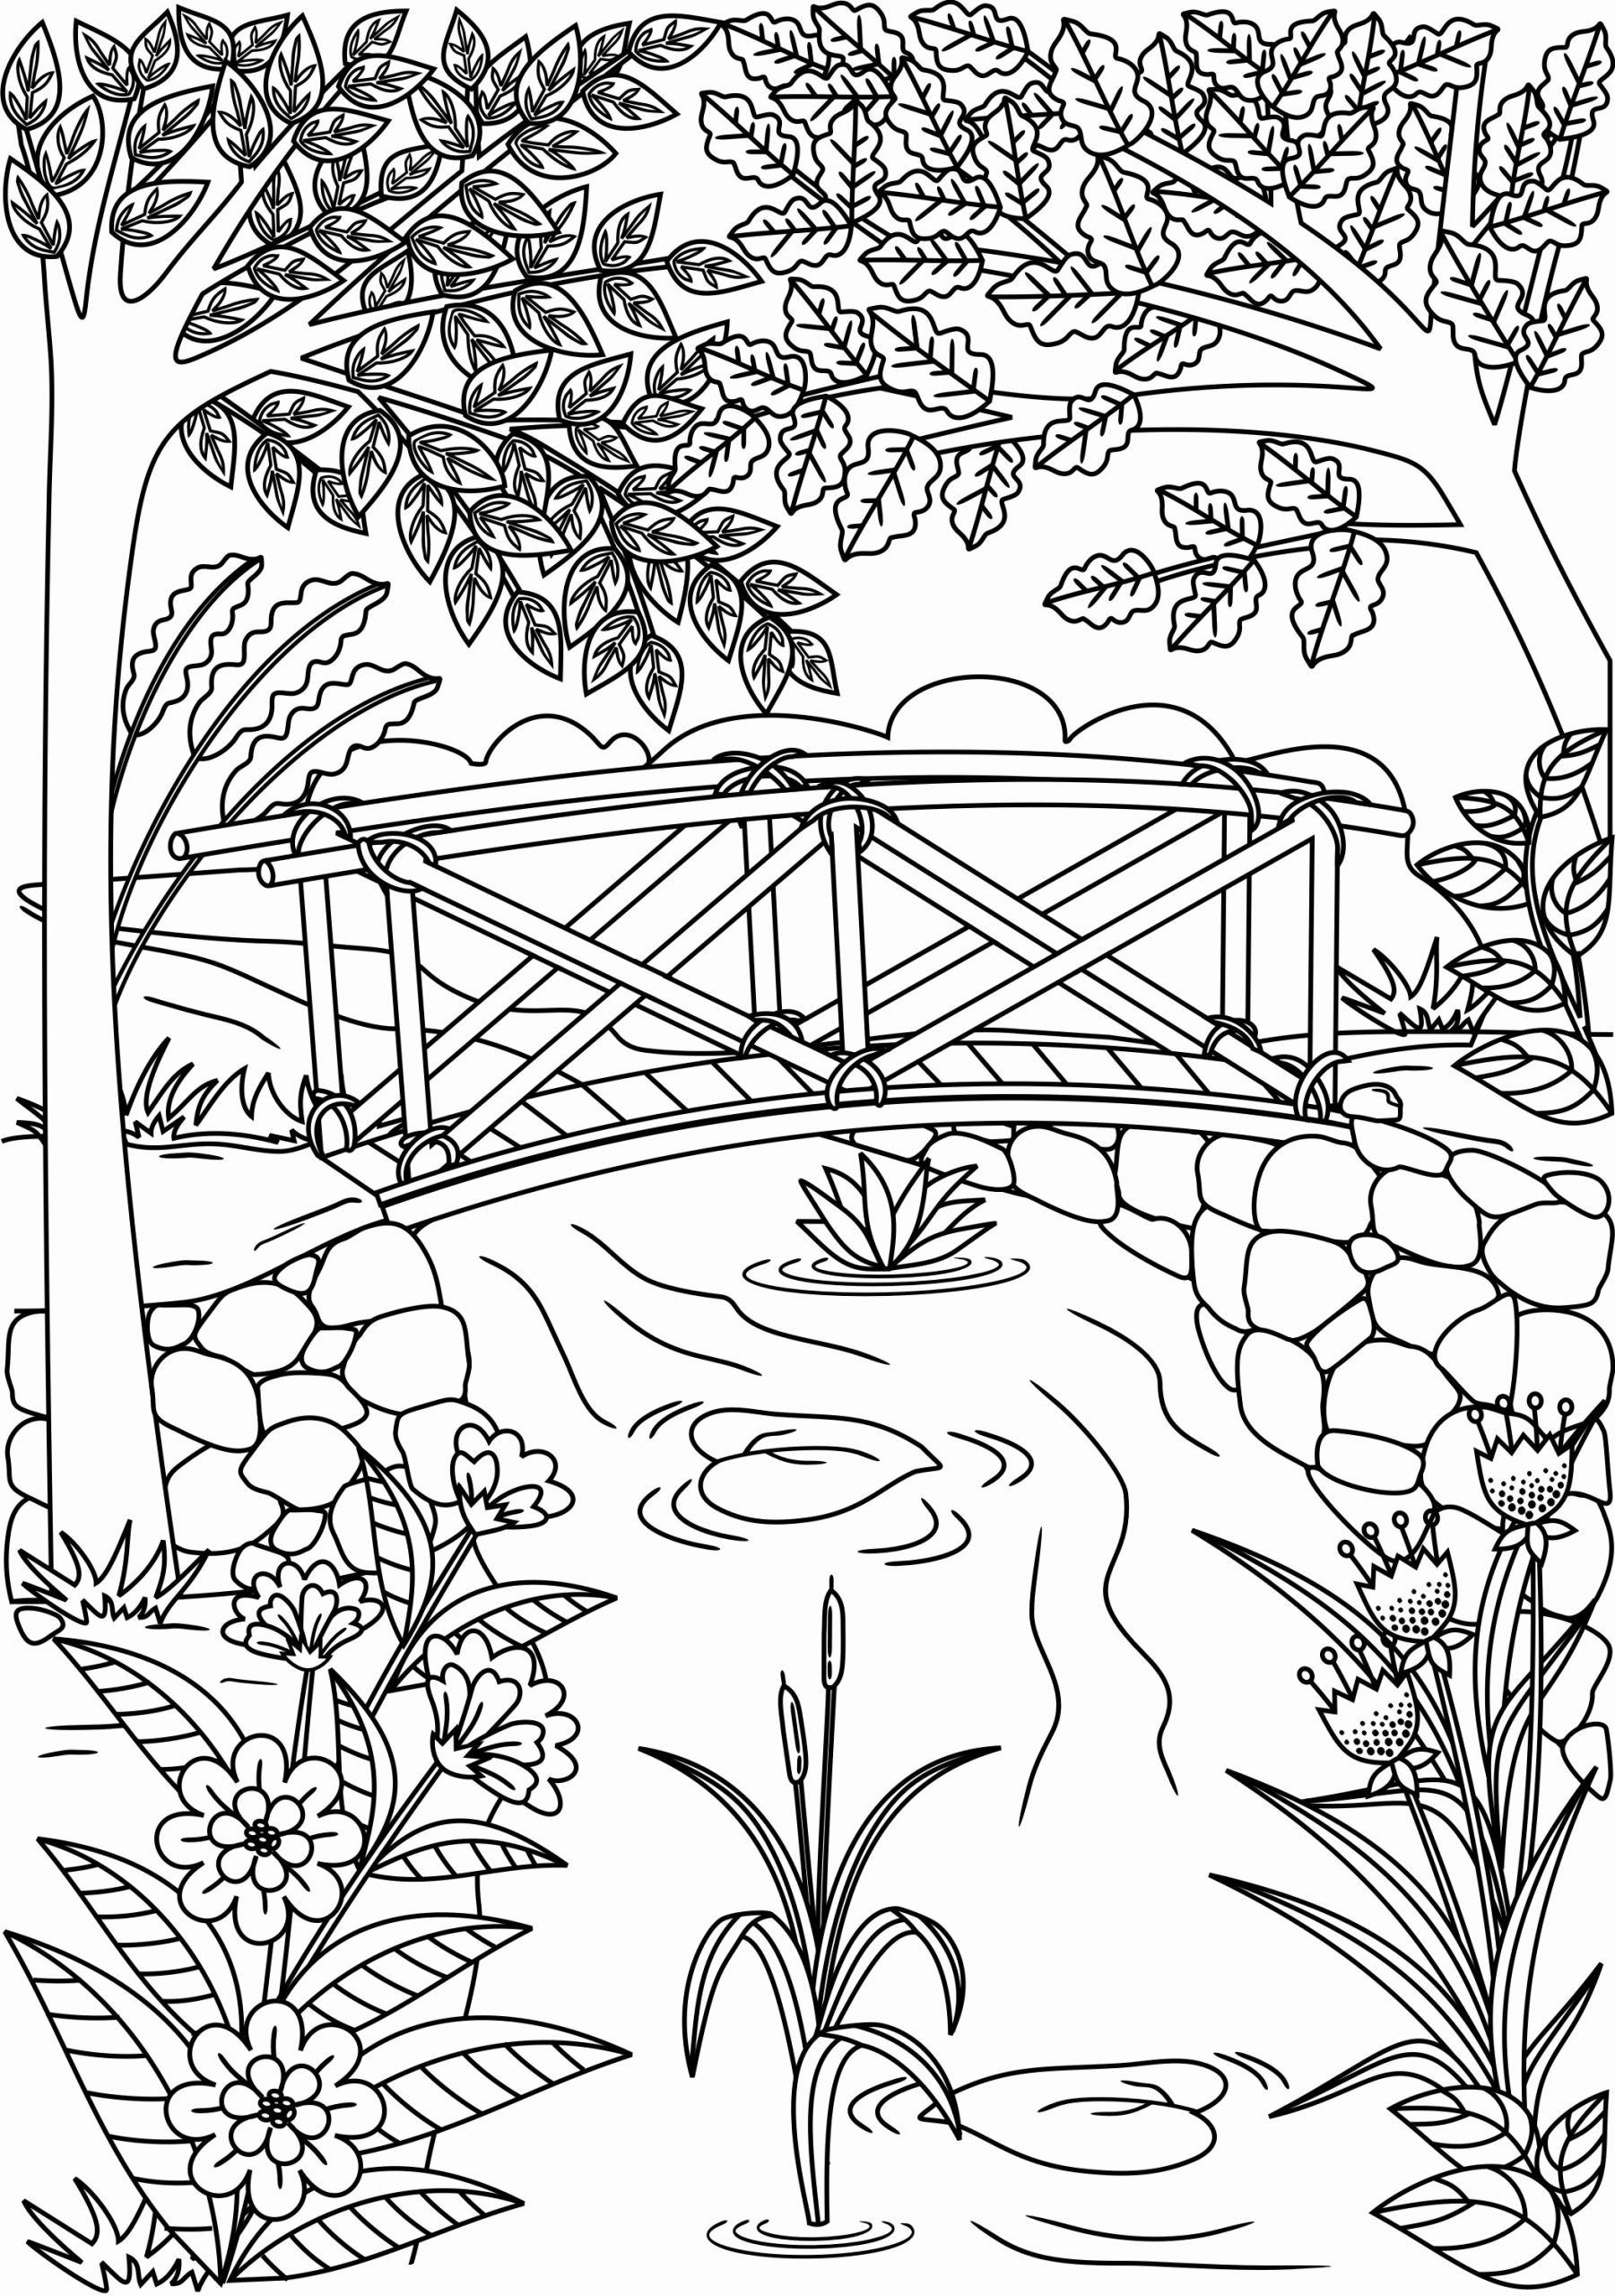 colouring pages of nature nature around the house coloring pages coloring home of colouring nature pages